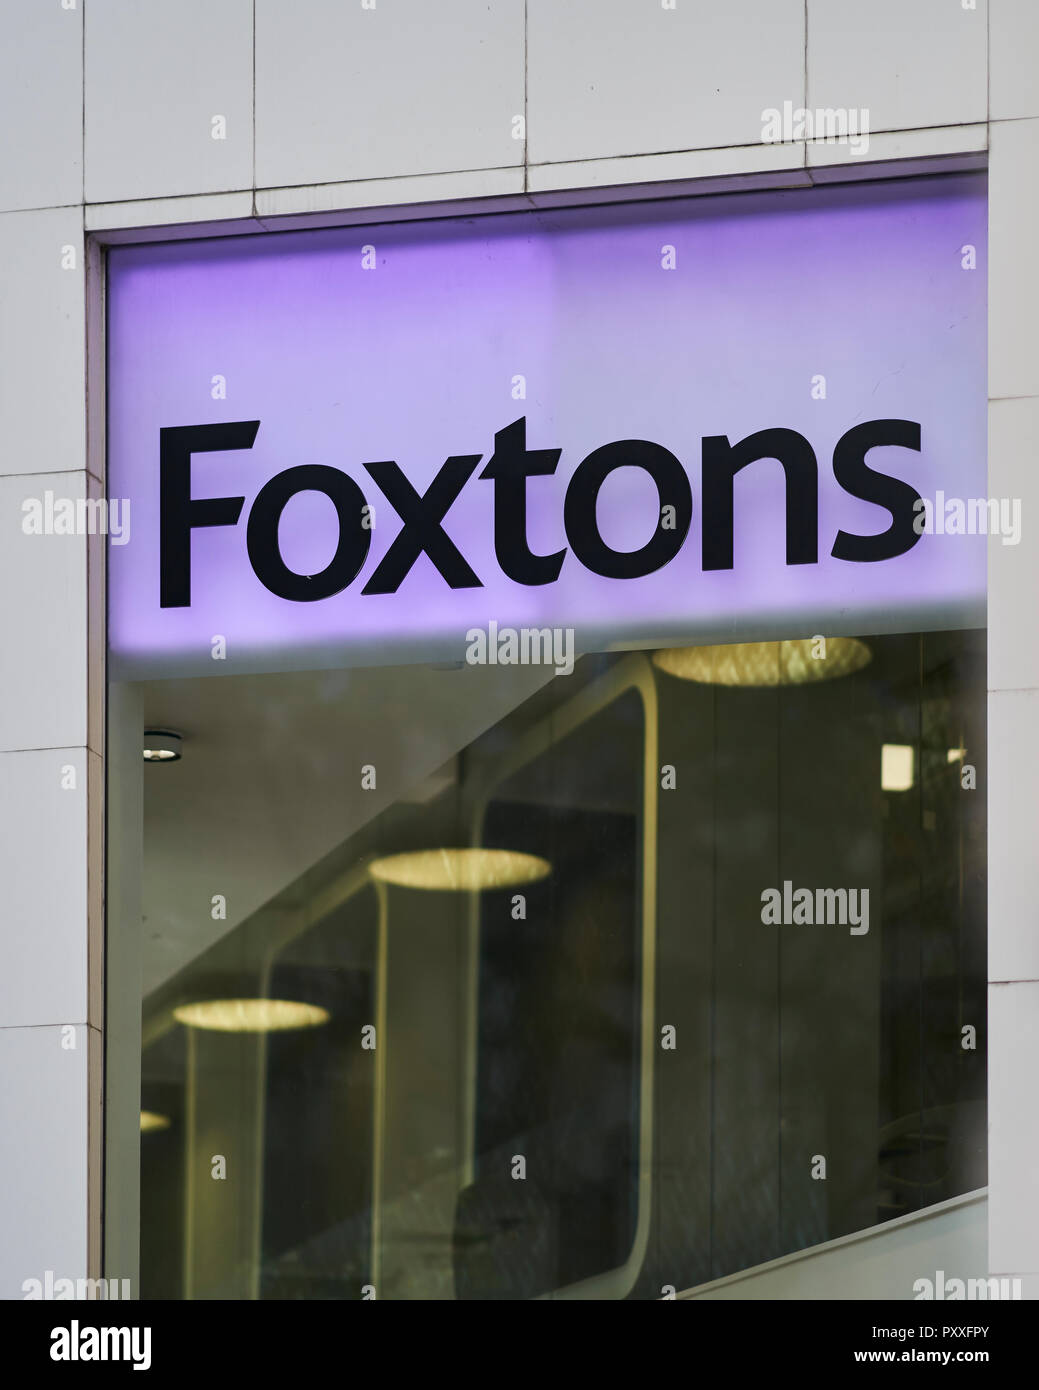 Foxtons Estate Agent - Sign - Stock Image